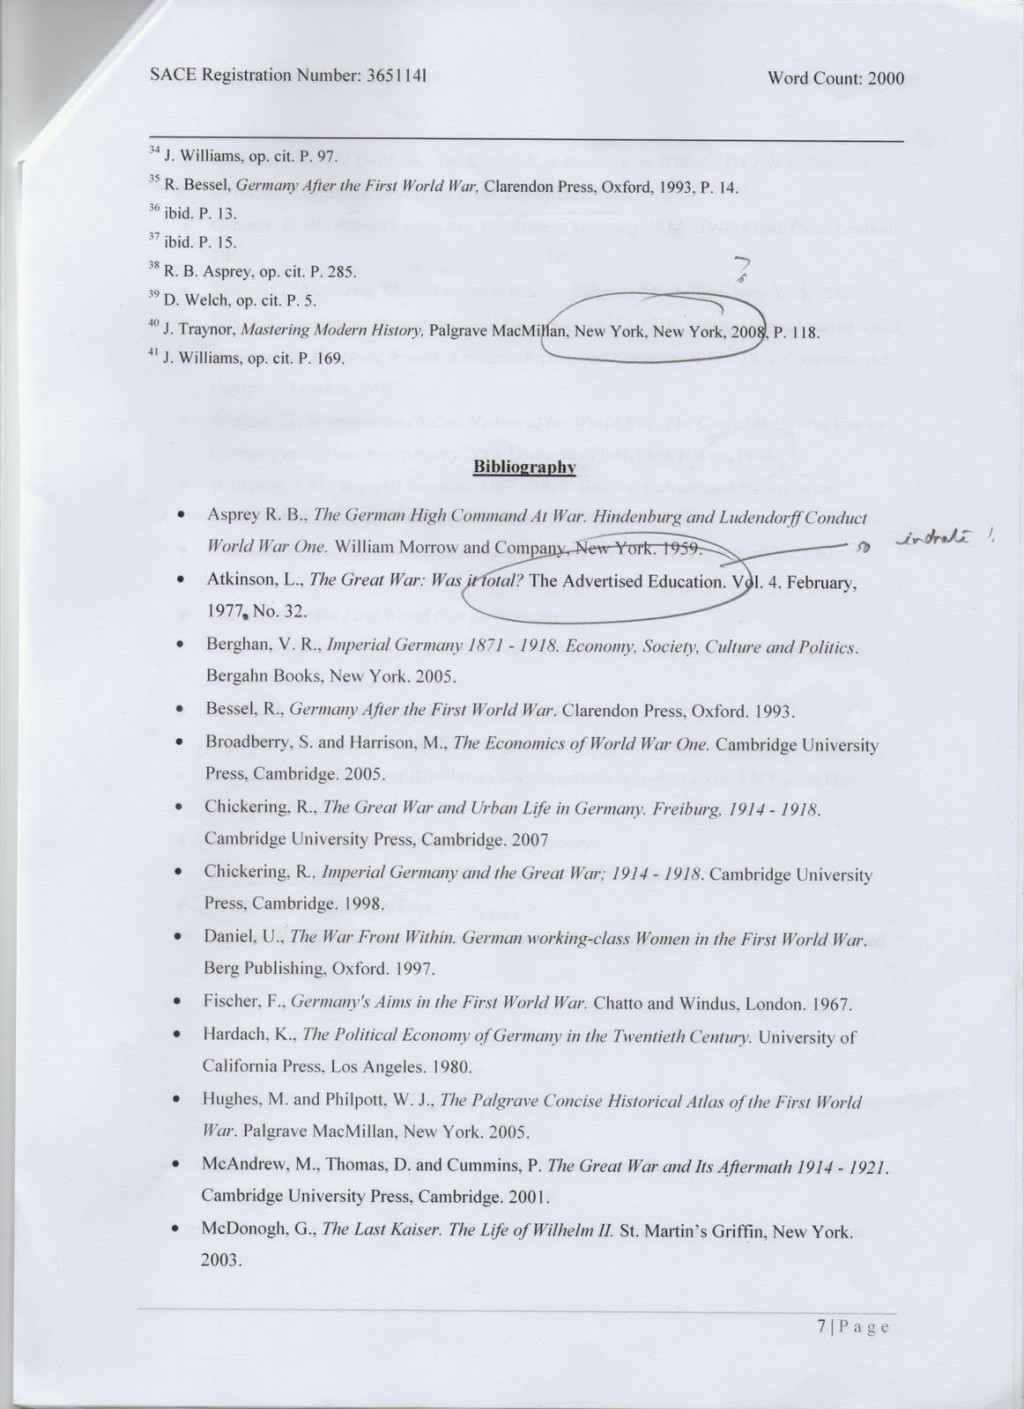 005 Endnotes2bbibliography1 Why Uchicago Essay Fearsome Length Examples Large